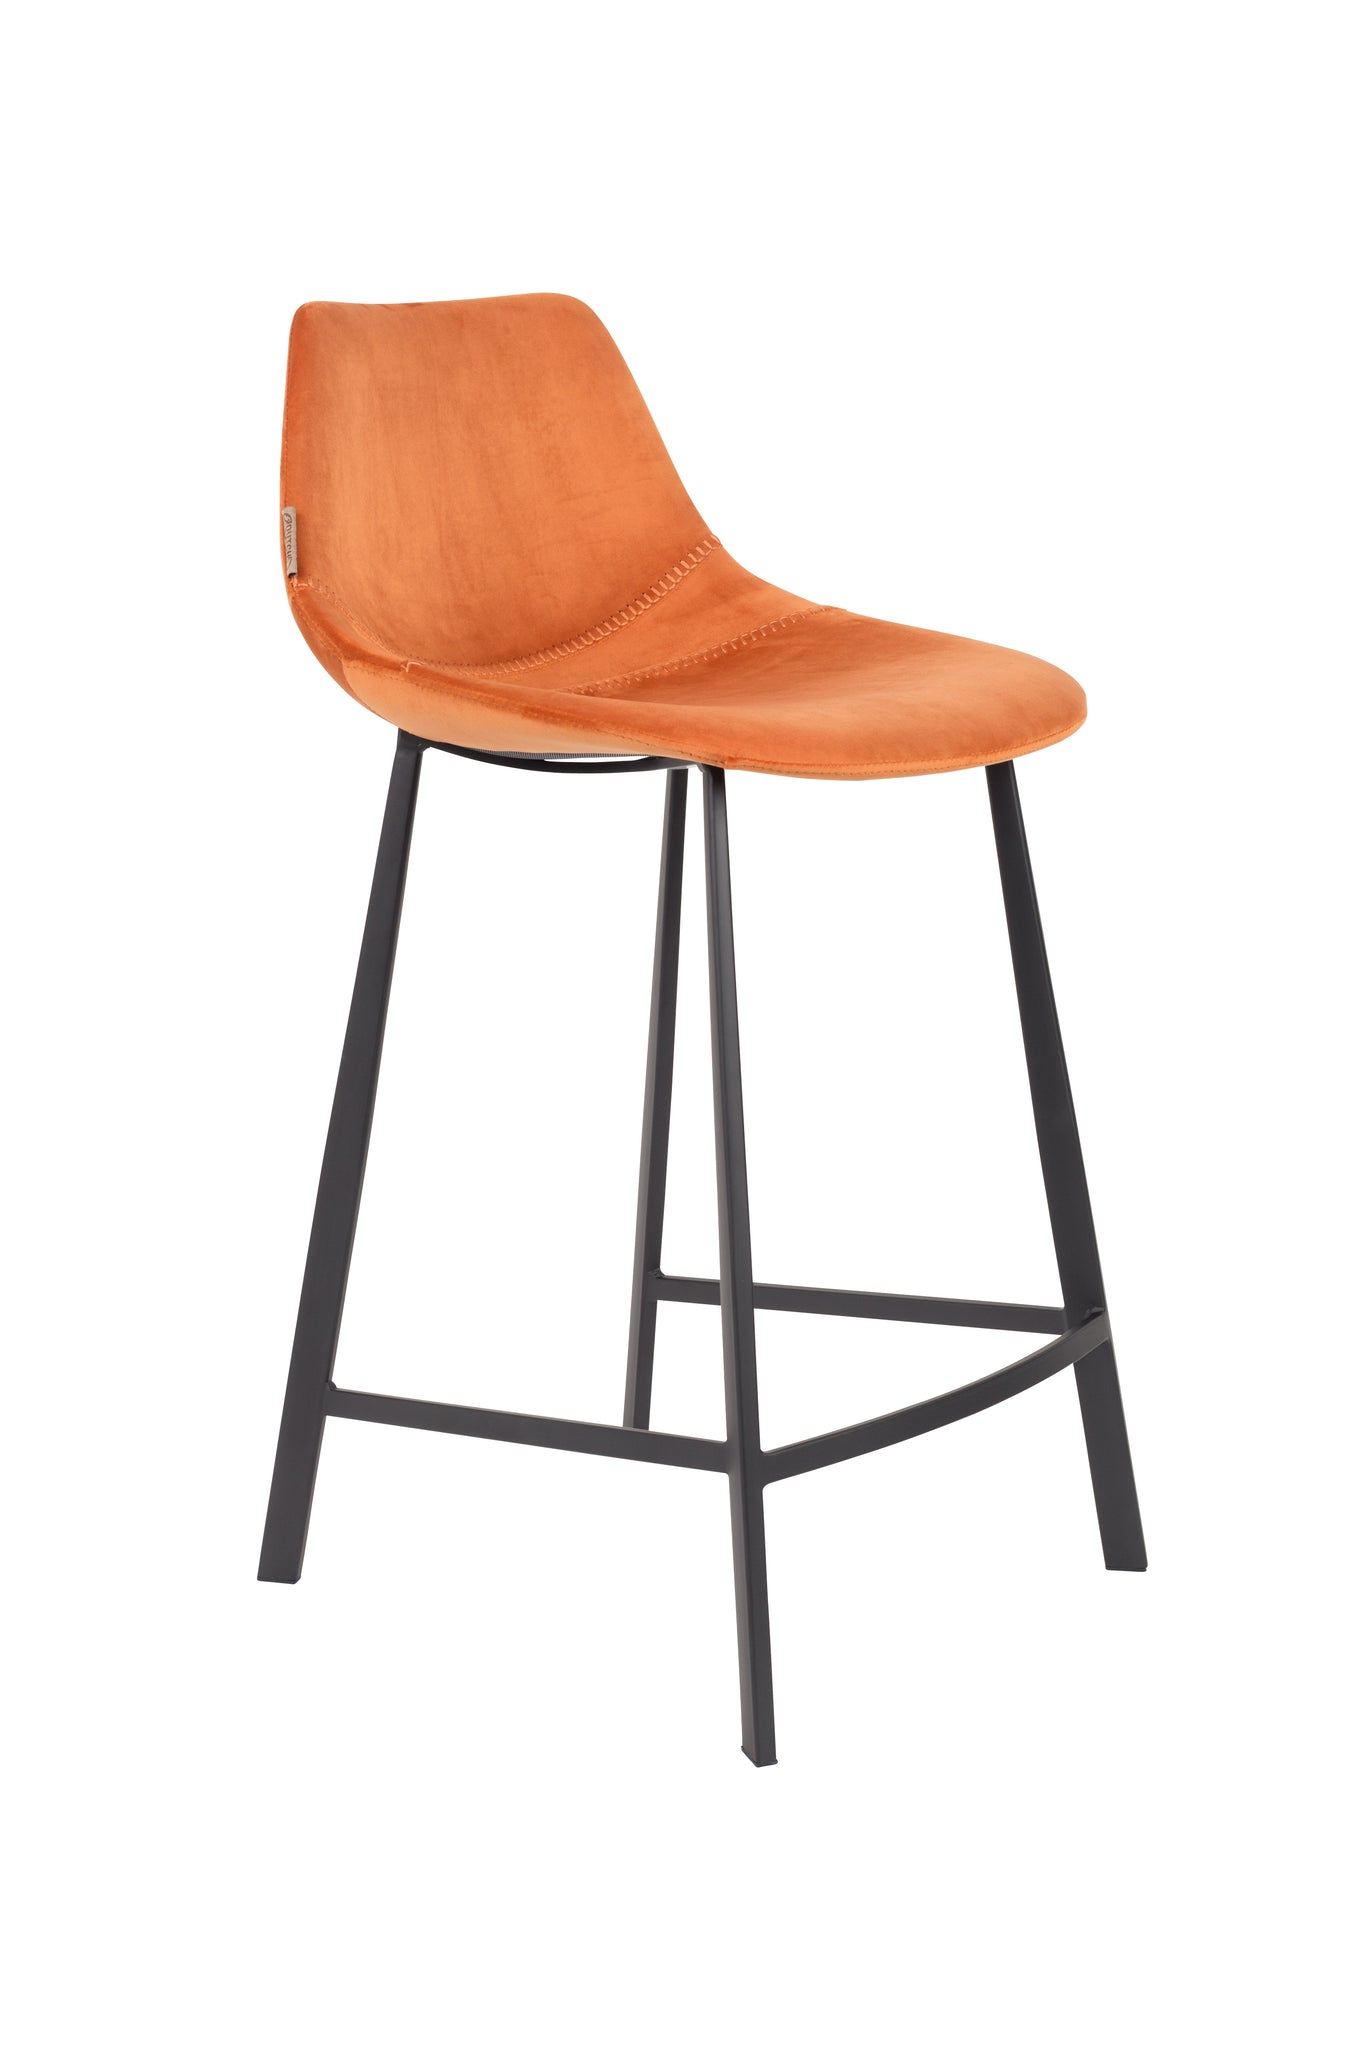 Franky Bar Stool by Dutchbone